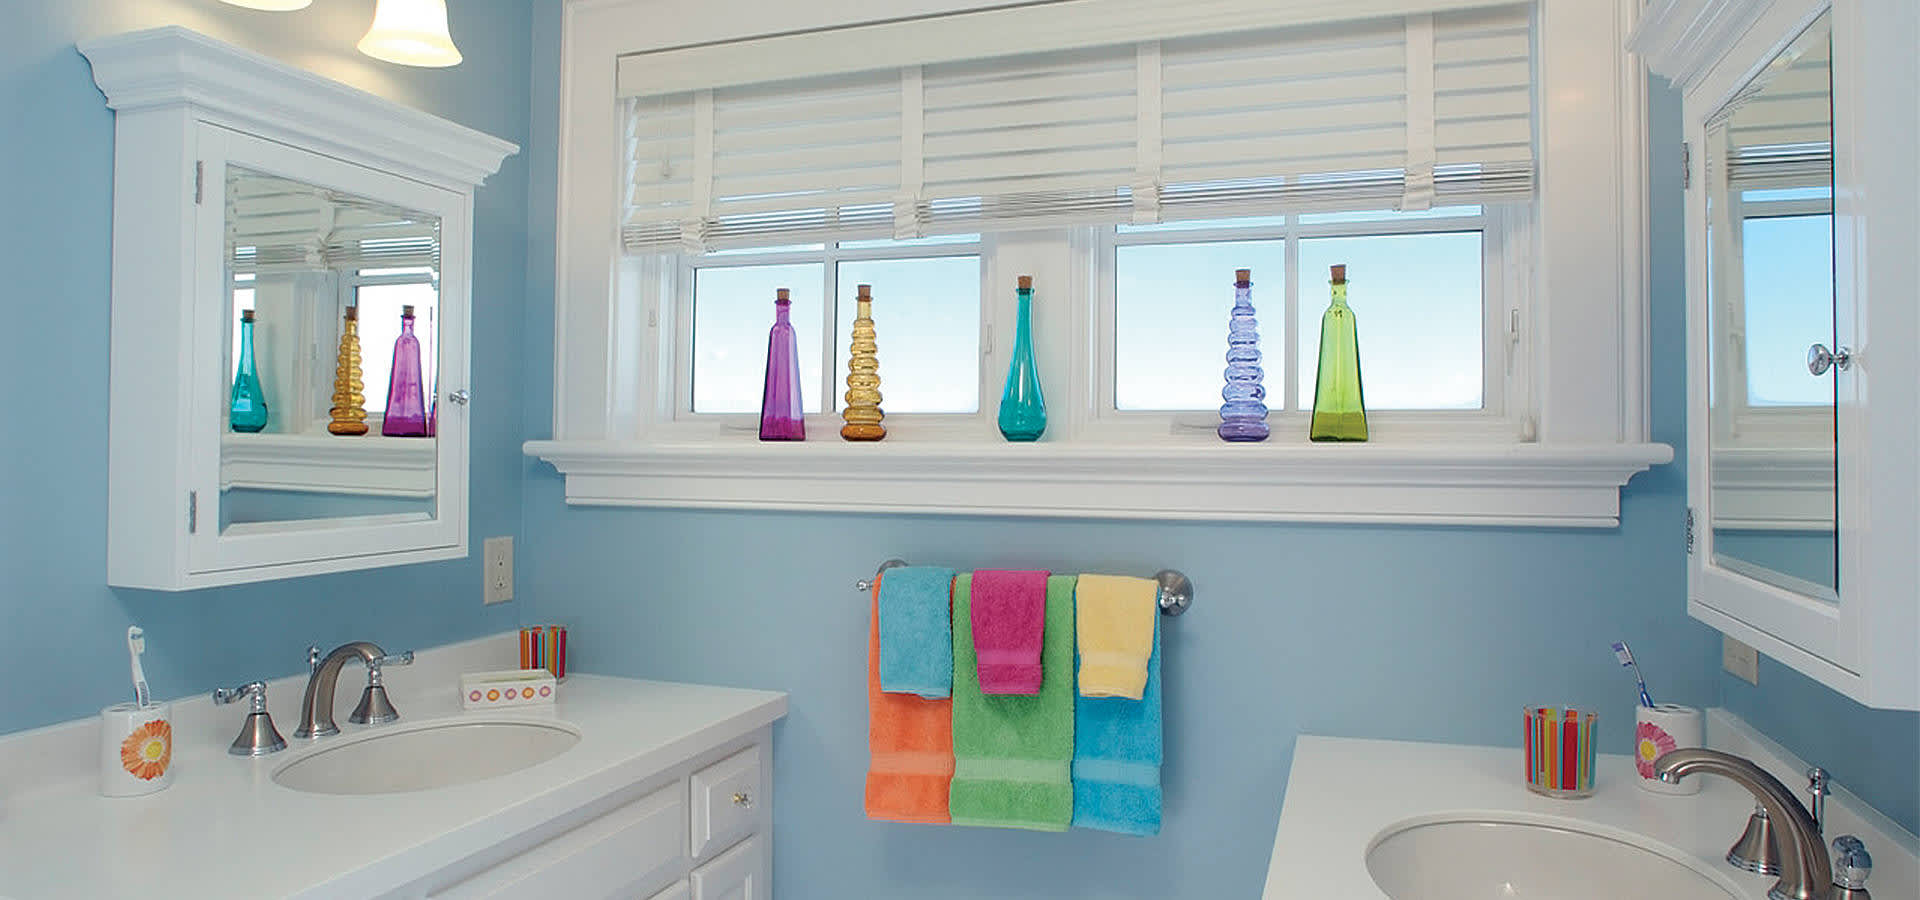 How To Clean Your Bathroom In 30 Minutes Or Less P G Everyday